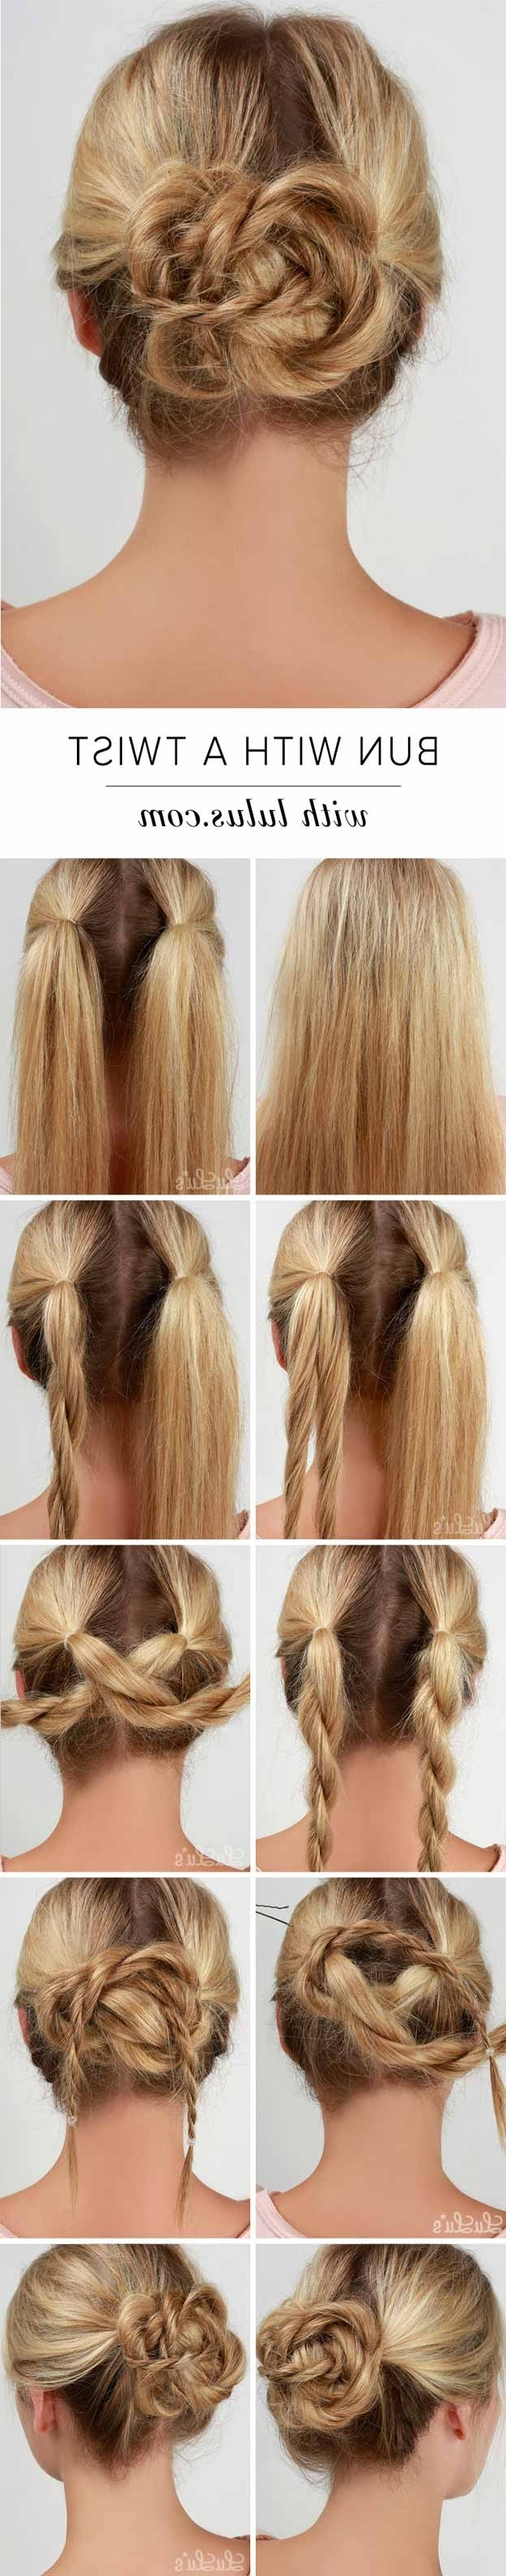 Widely Used Diy Wedding Guest Hairstyles With 31 Wedding Hairstyles For Long Hair – The Goddess (View 3 of 15)